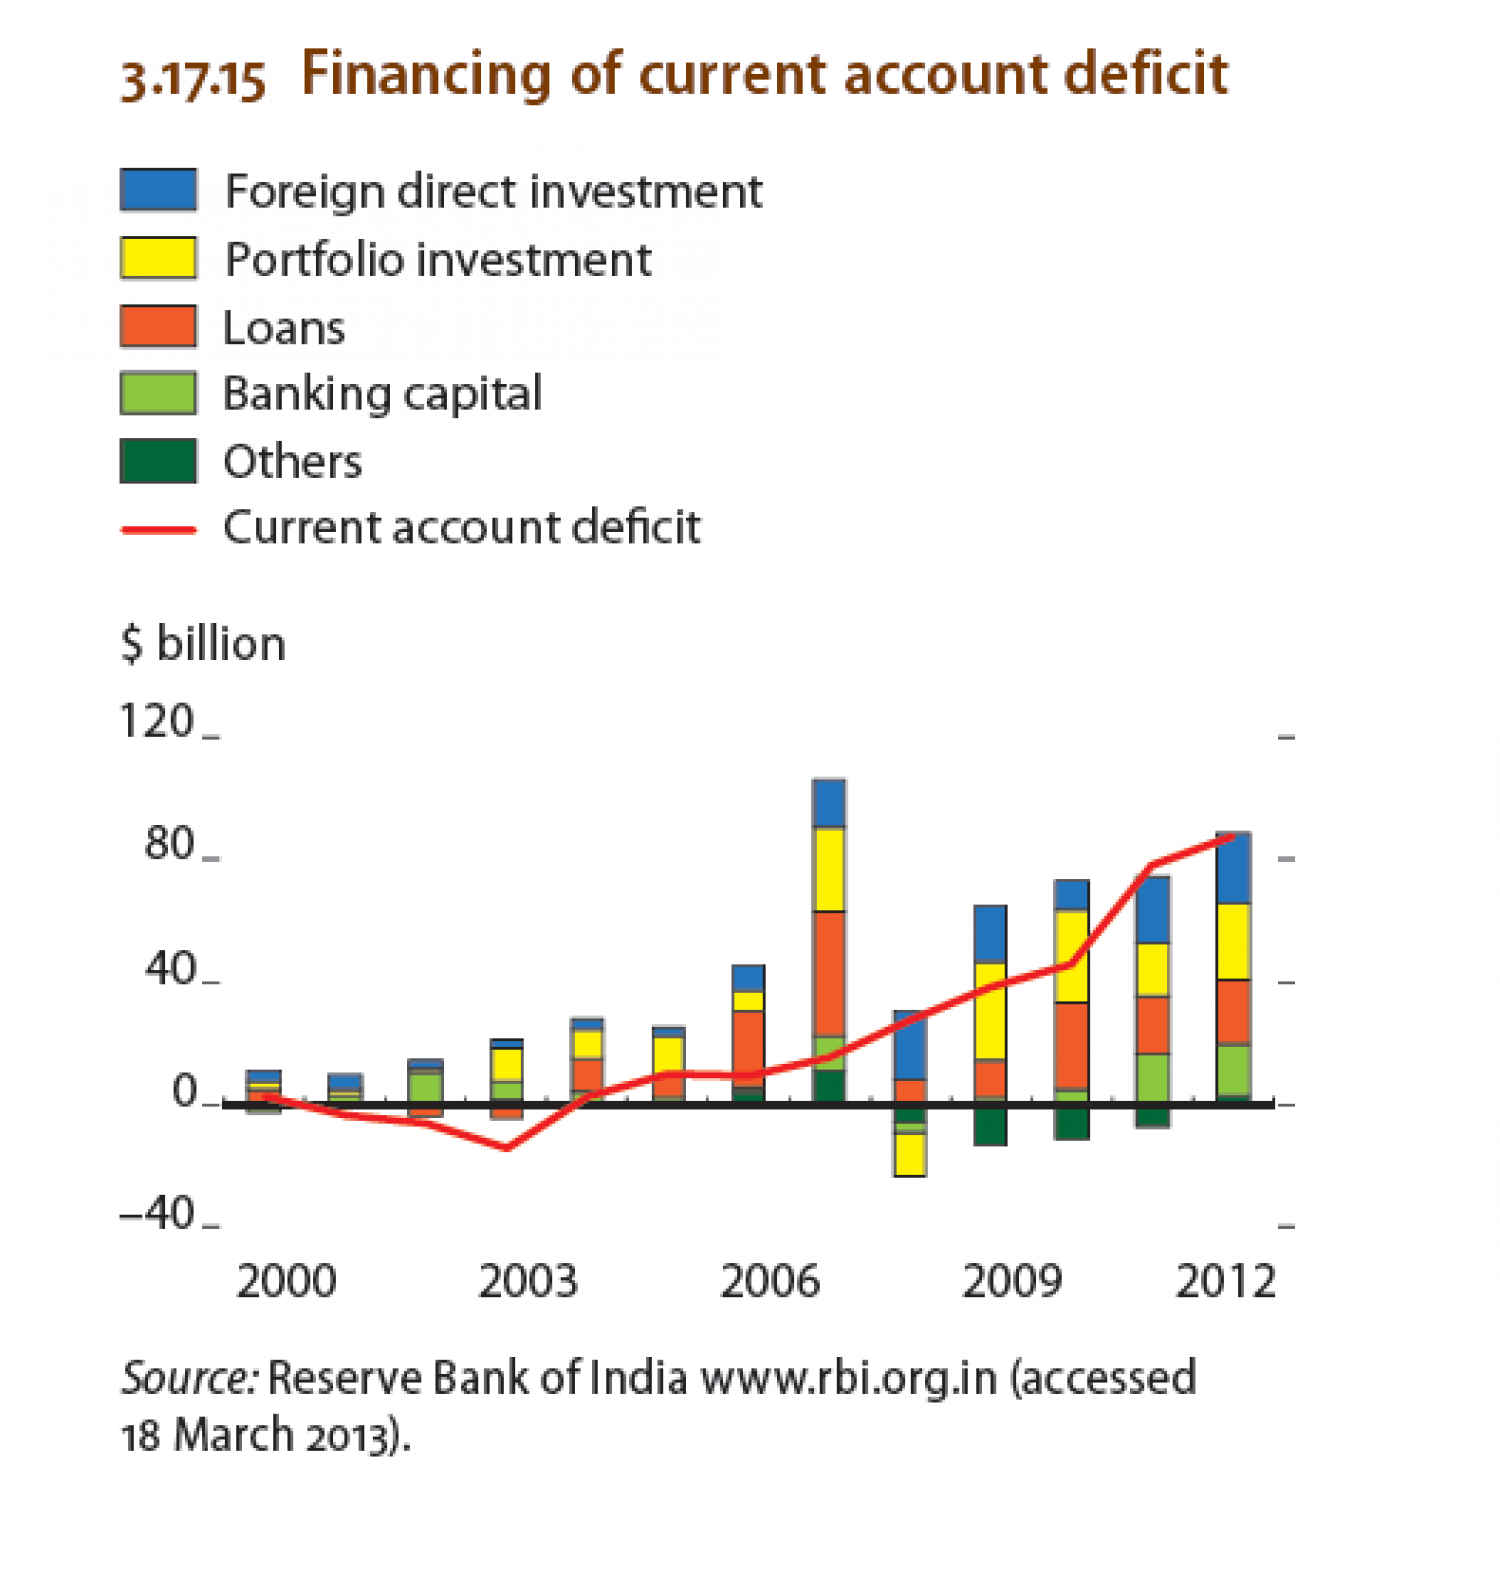 India - Financing of current account deficit Infographic